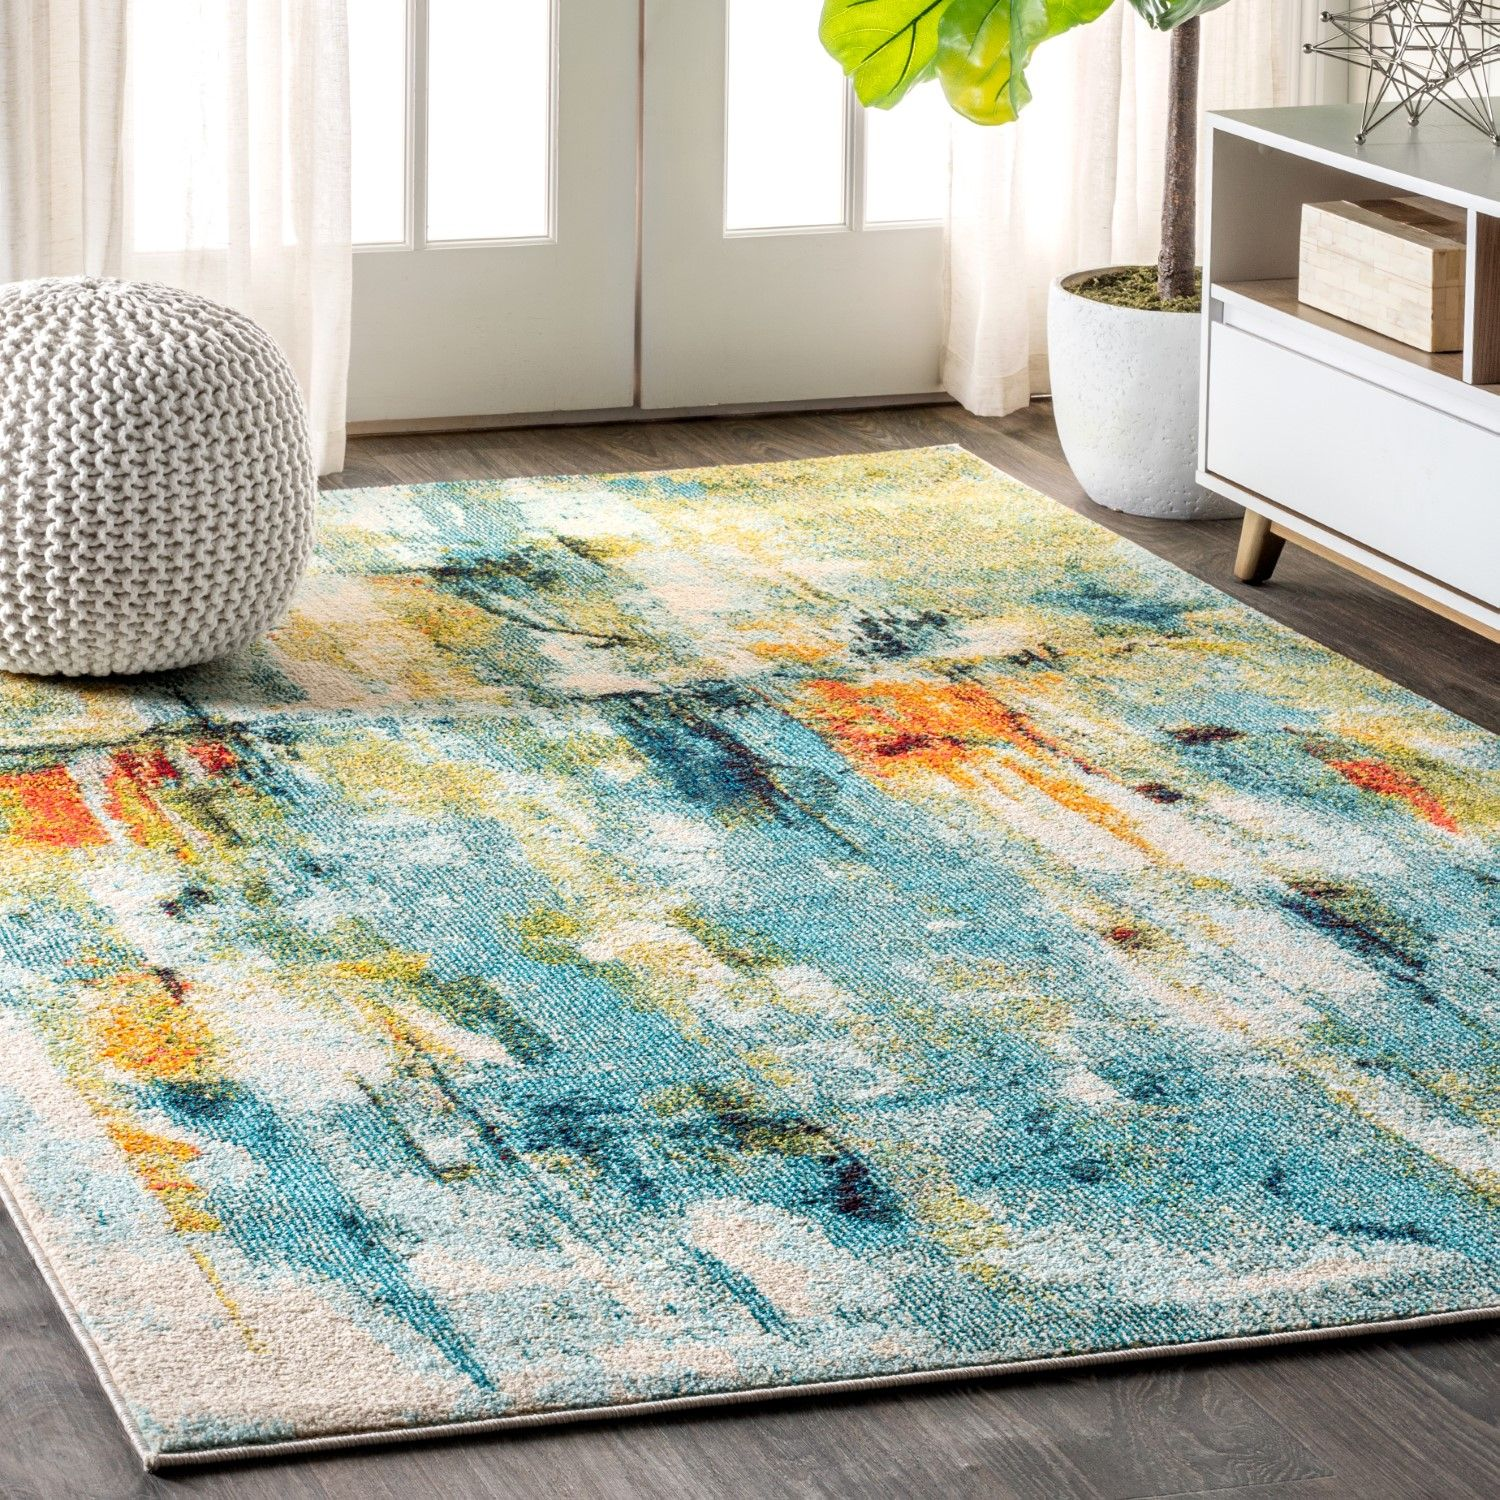 Holland Modern Abstract Waterfall Rug Eyely Area Rugs Rugs Colorful Rugs